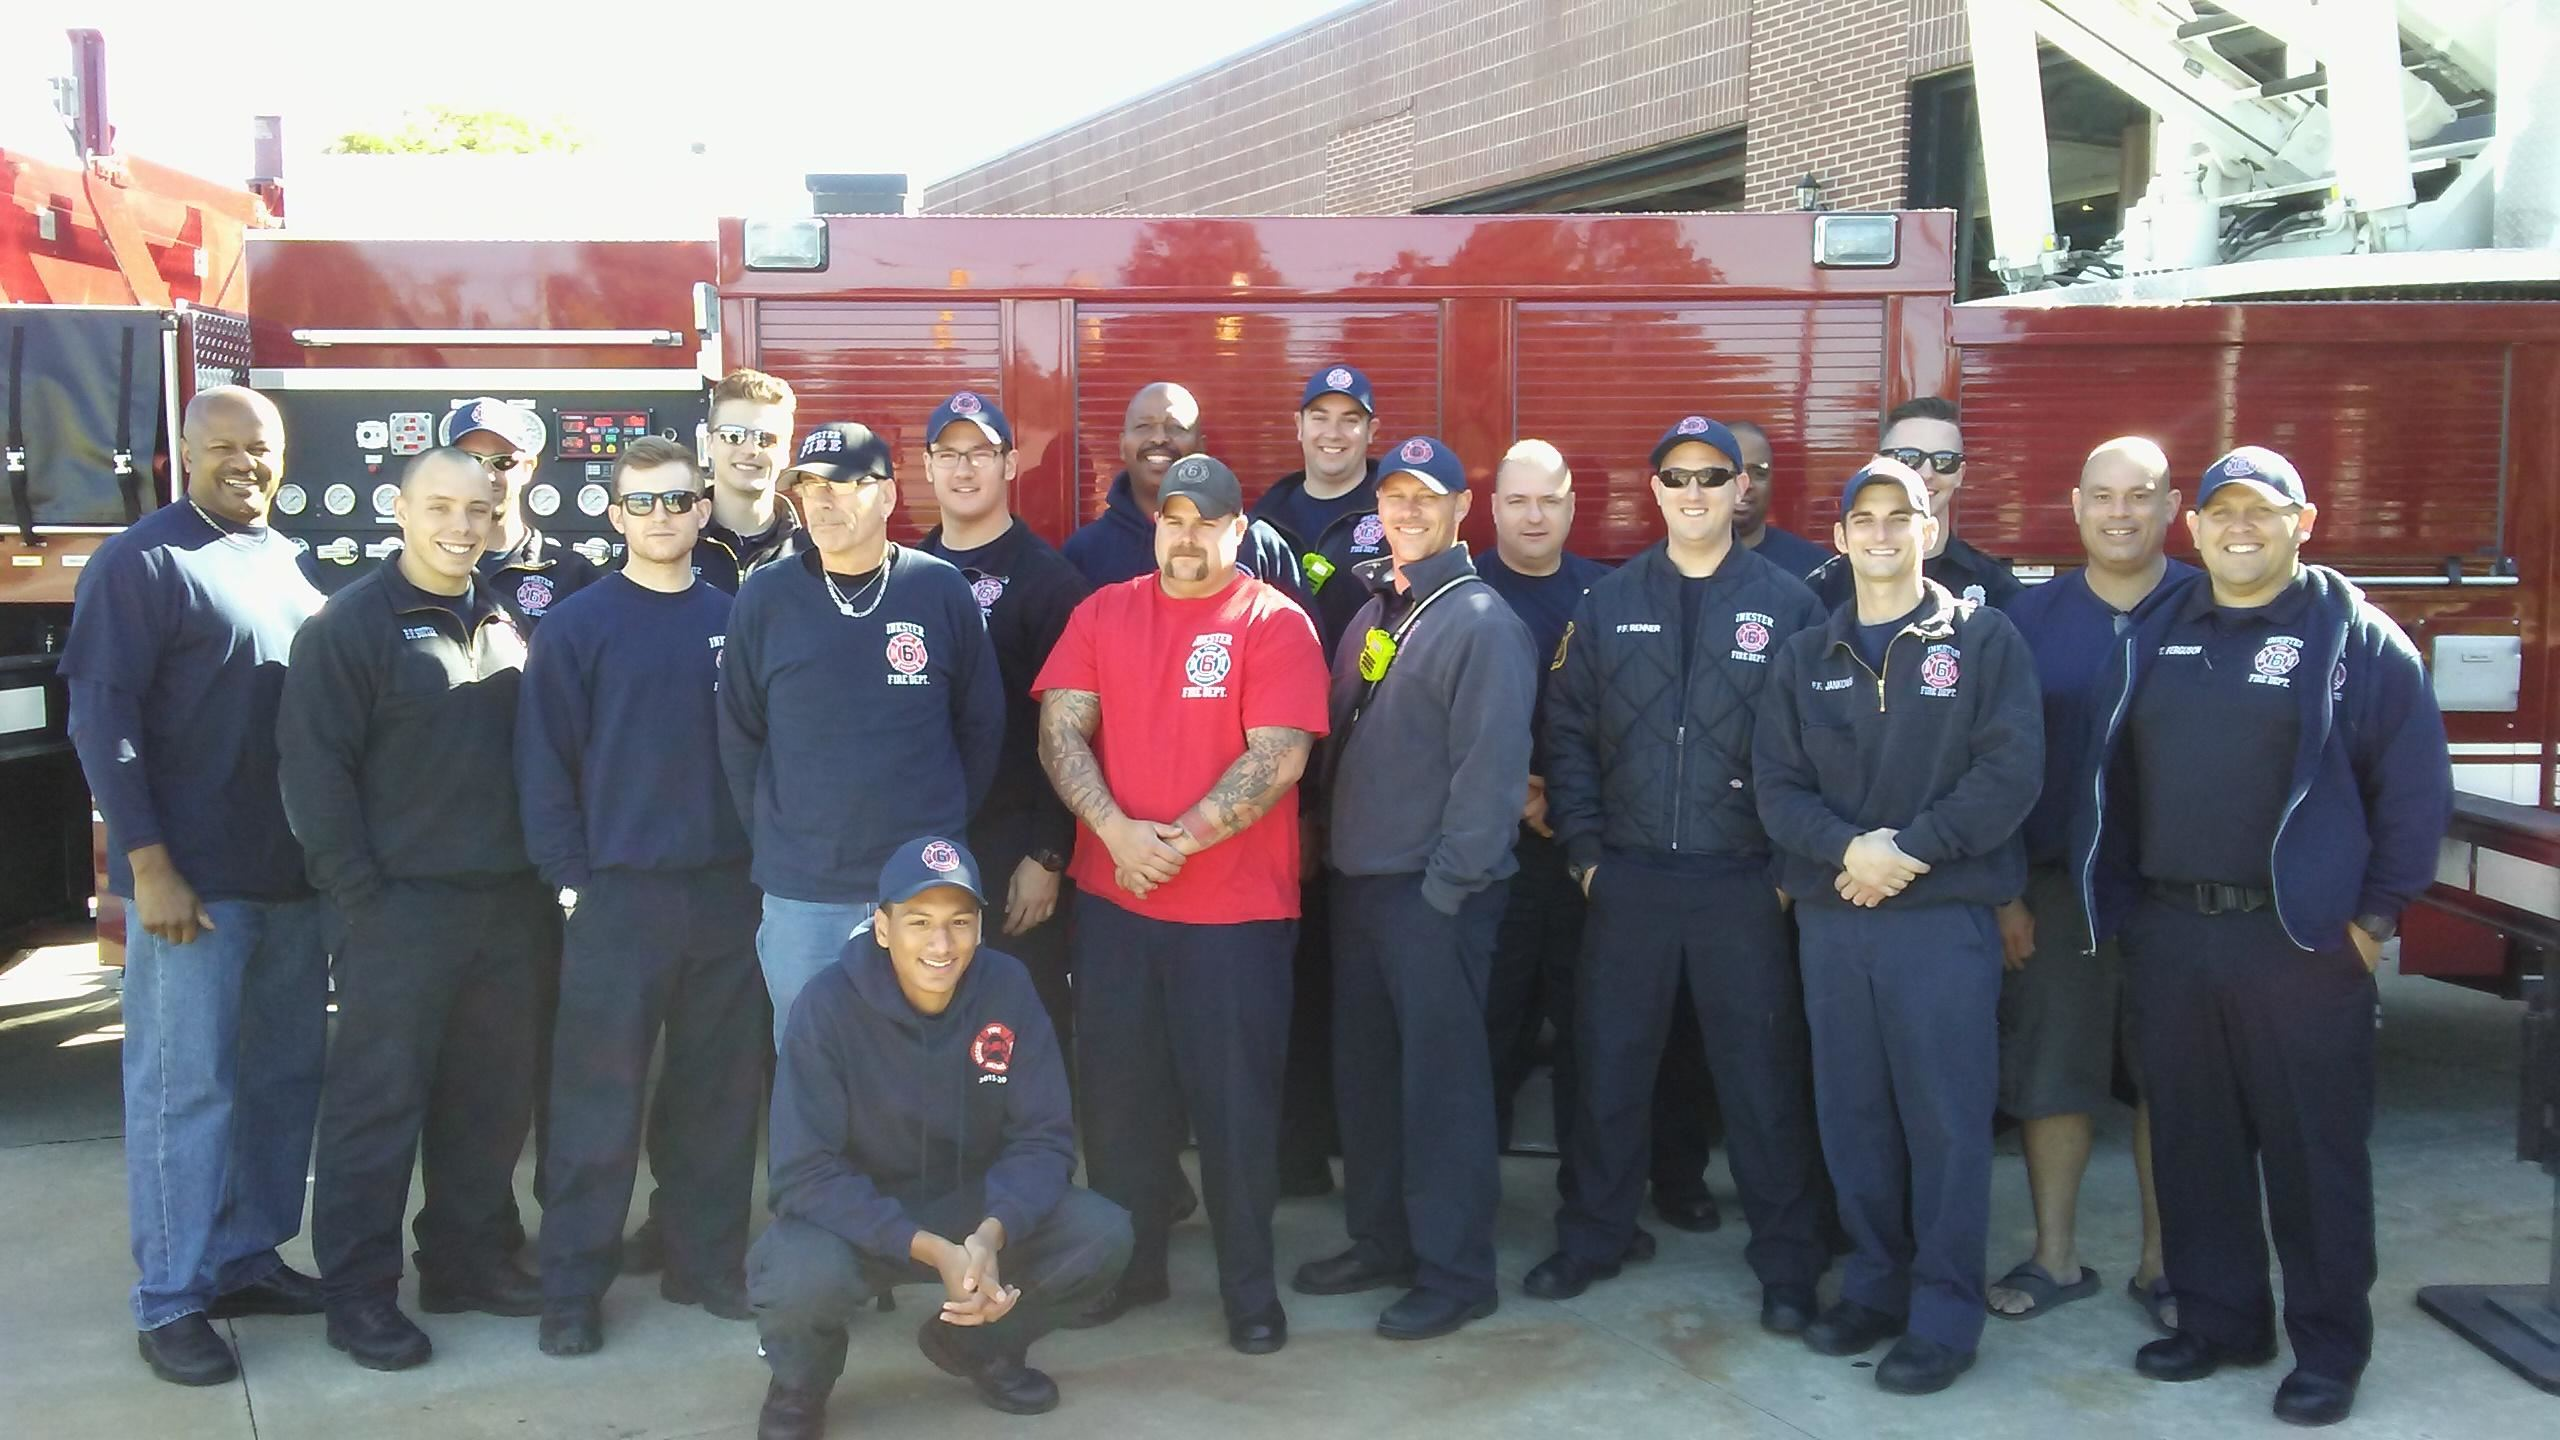 Group picture of fire fighters